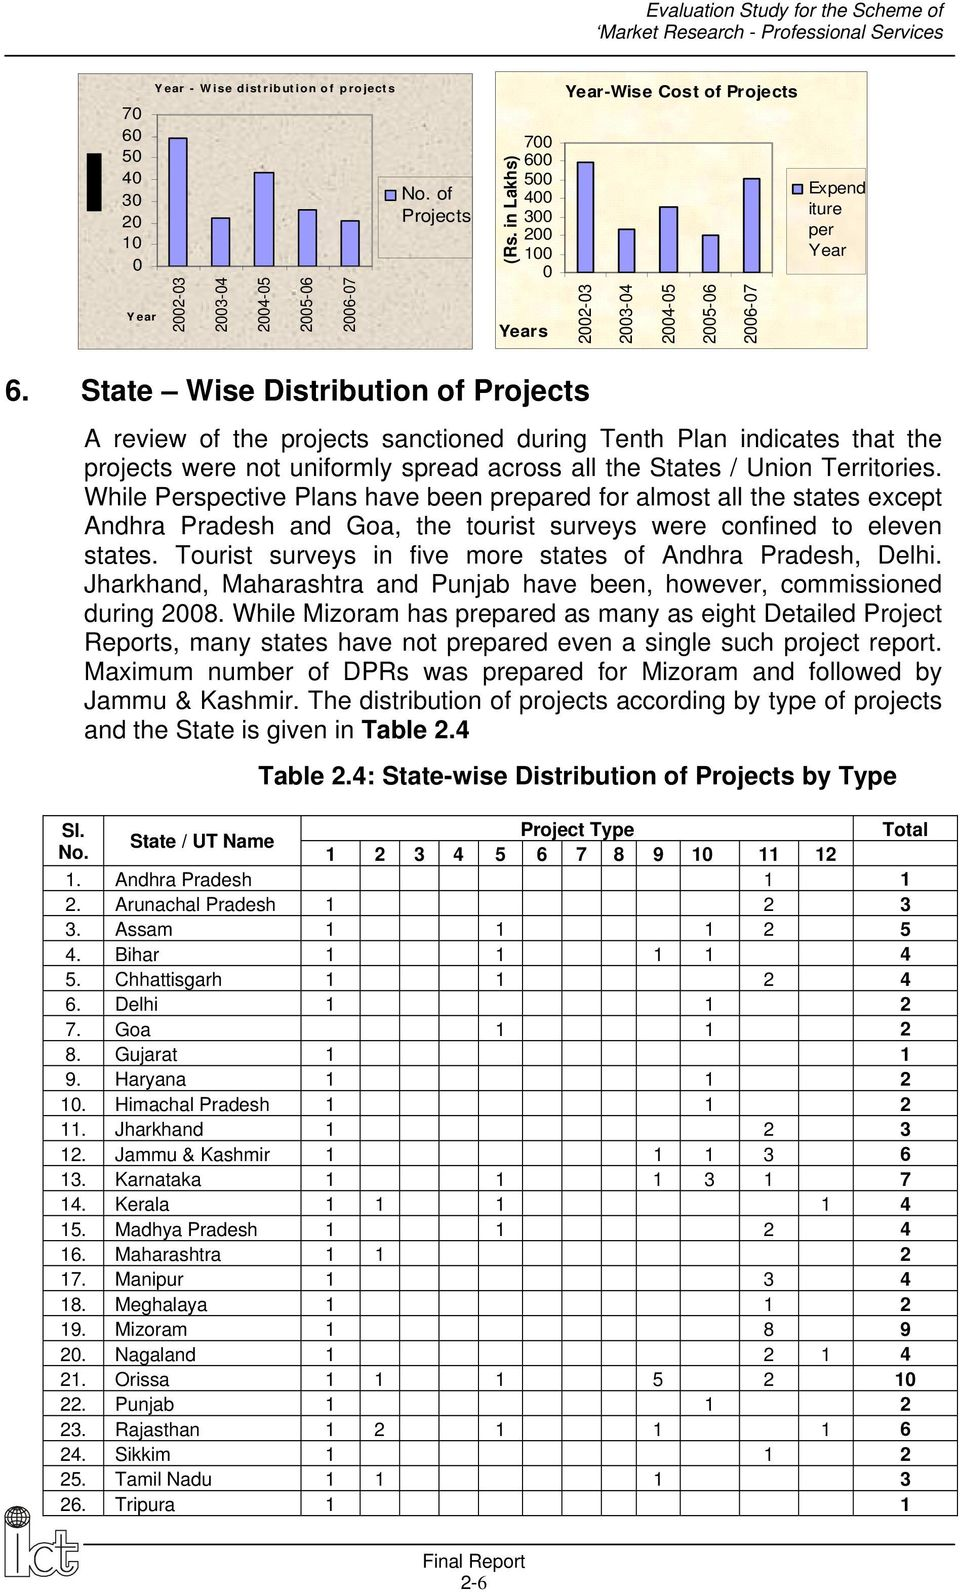 State Wise Distribution of Projects A review of the projects sanctioned during Tenth Plan indicates that the projects were not uniformly spread across all the States / Union Territories.